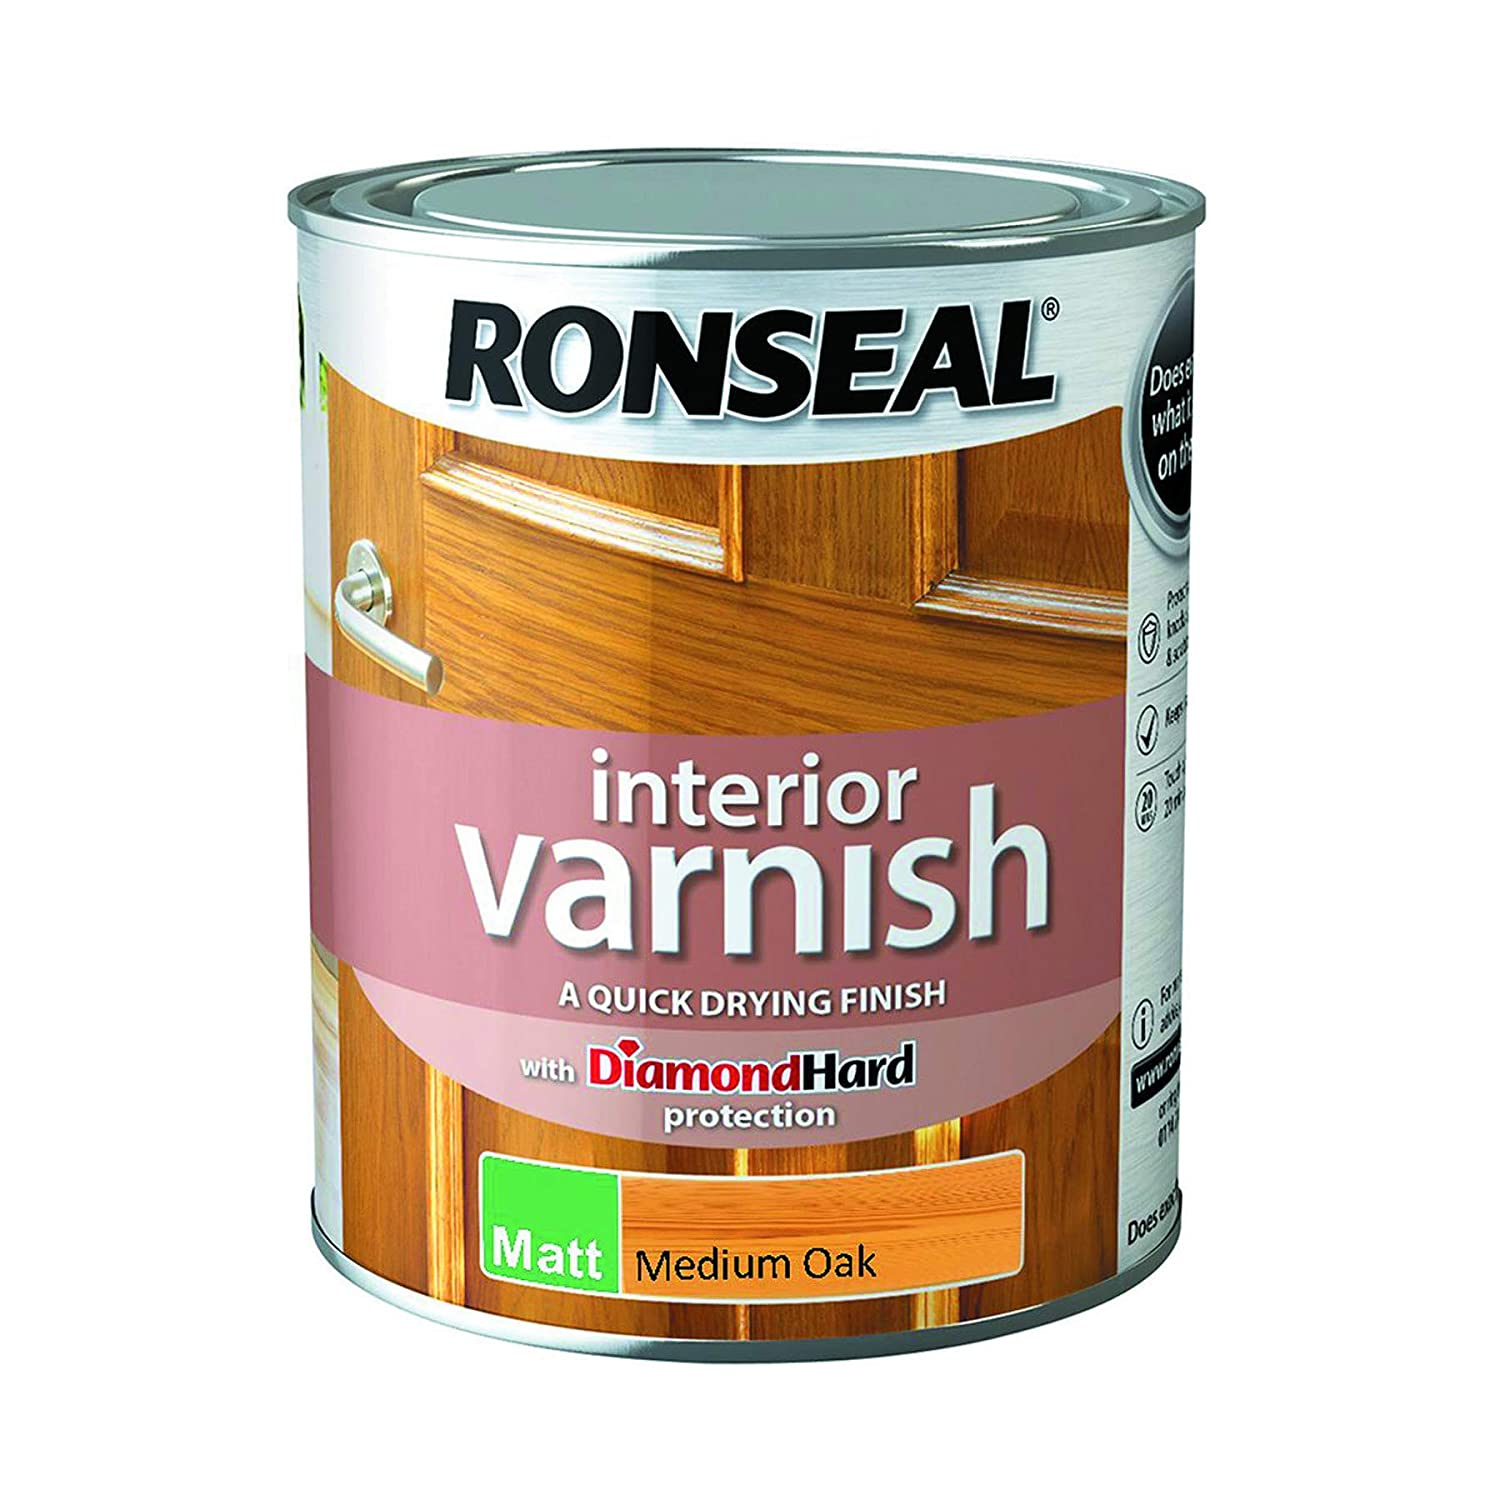 Ronseal Interior Varnish Medium Oak Matt 750ml 36863